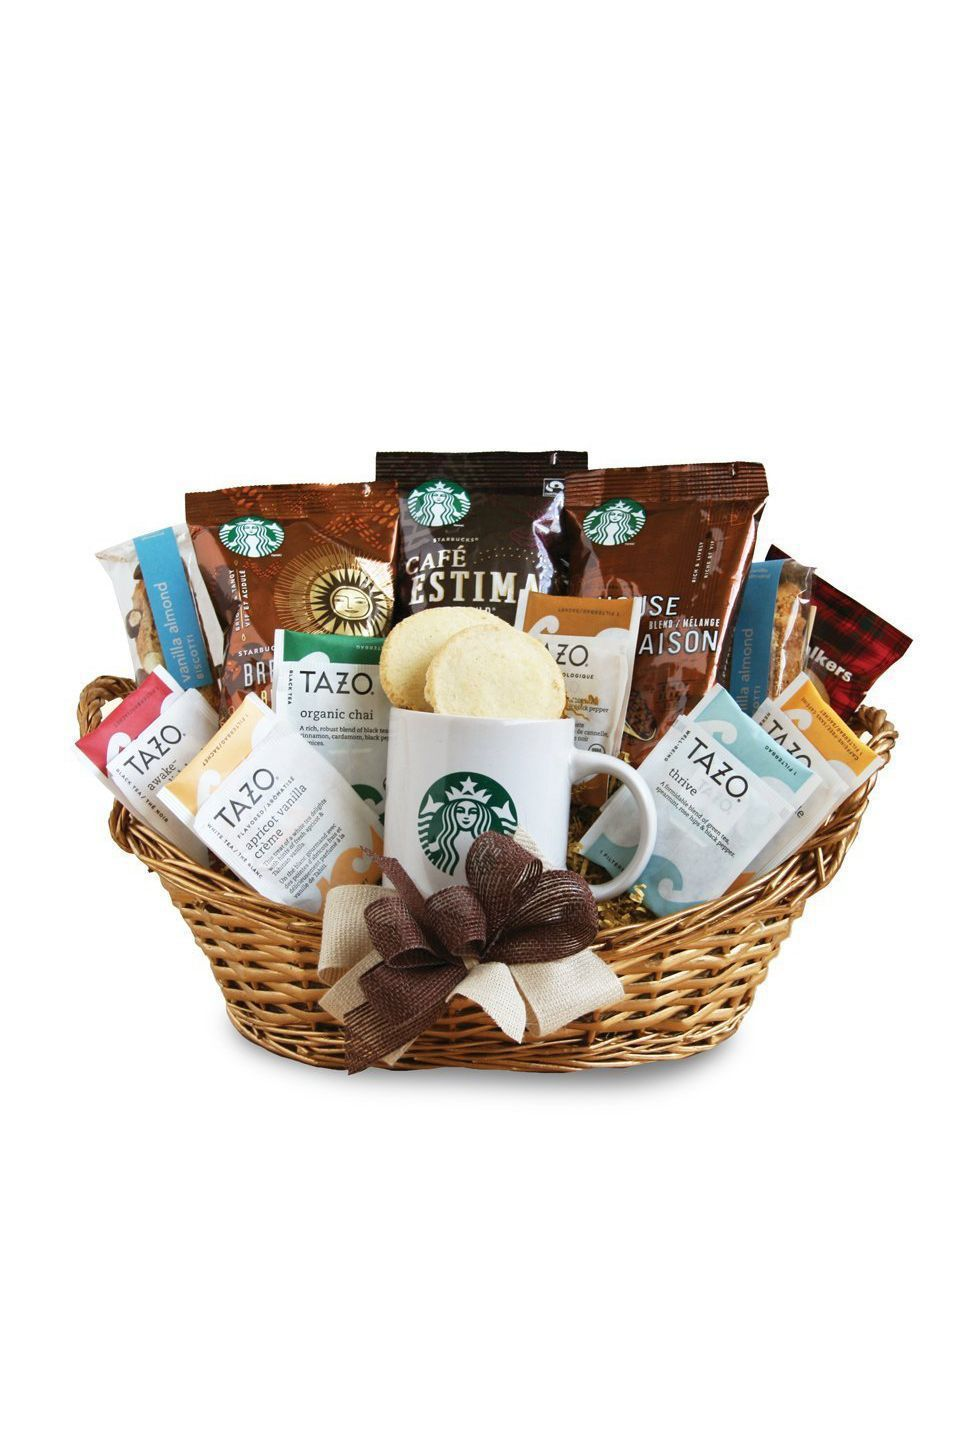 12 mothers day gift basket ideas gift baskets for mothers day negle Images